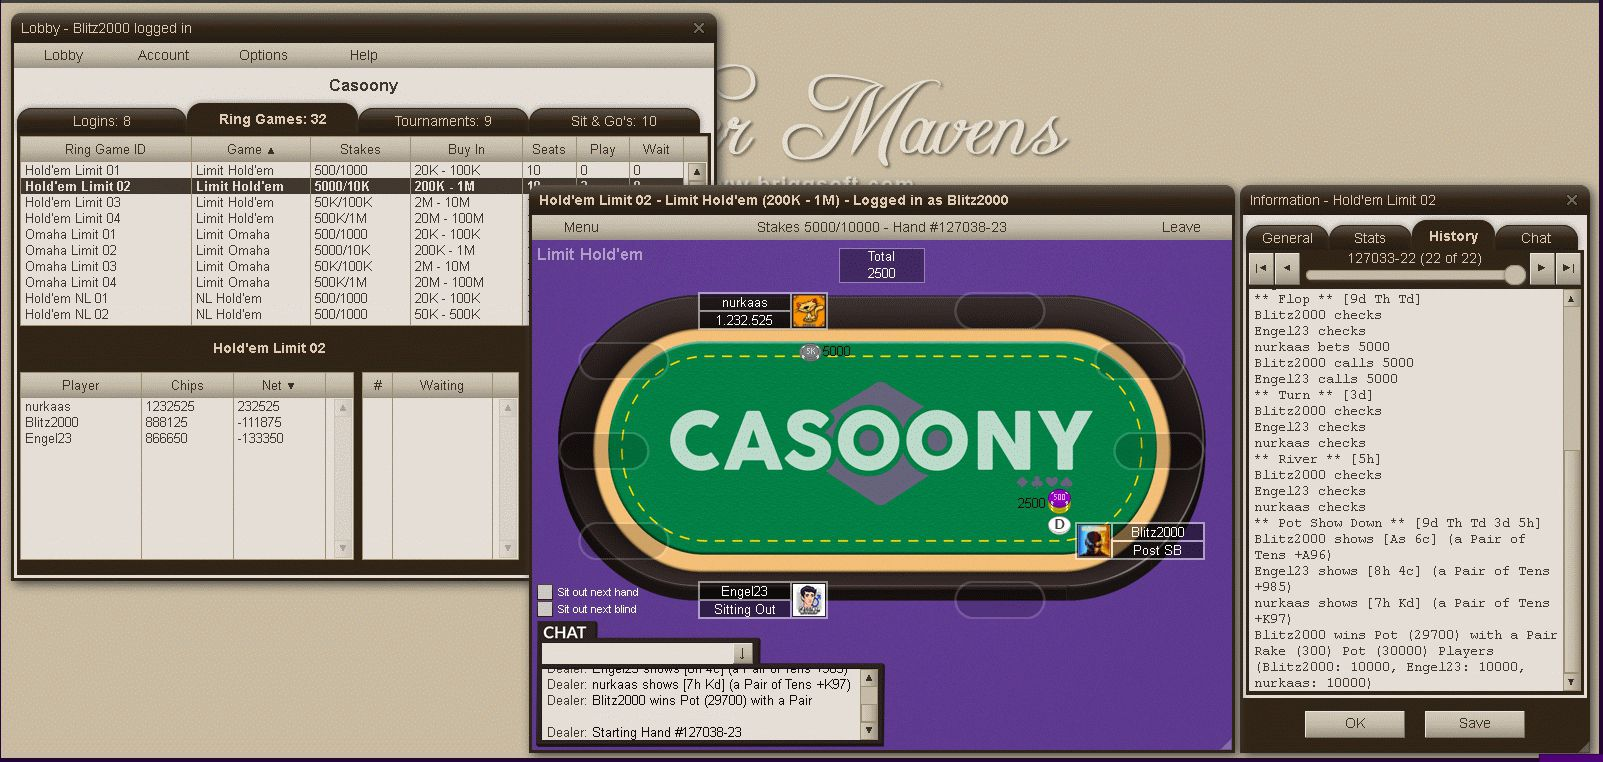 Casoony_Poker_Fun_HoldEmLimit02_5000_10000_200K-1M_20190314_2031_OUT-Engel23_SHOW.gif